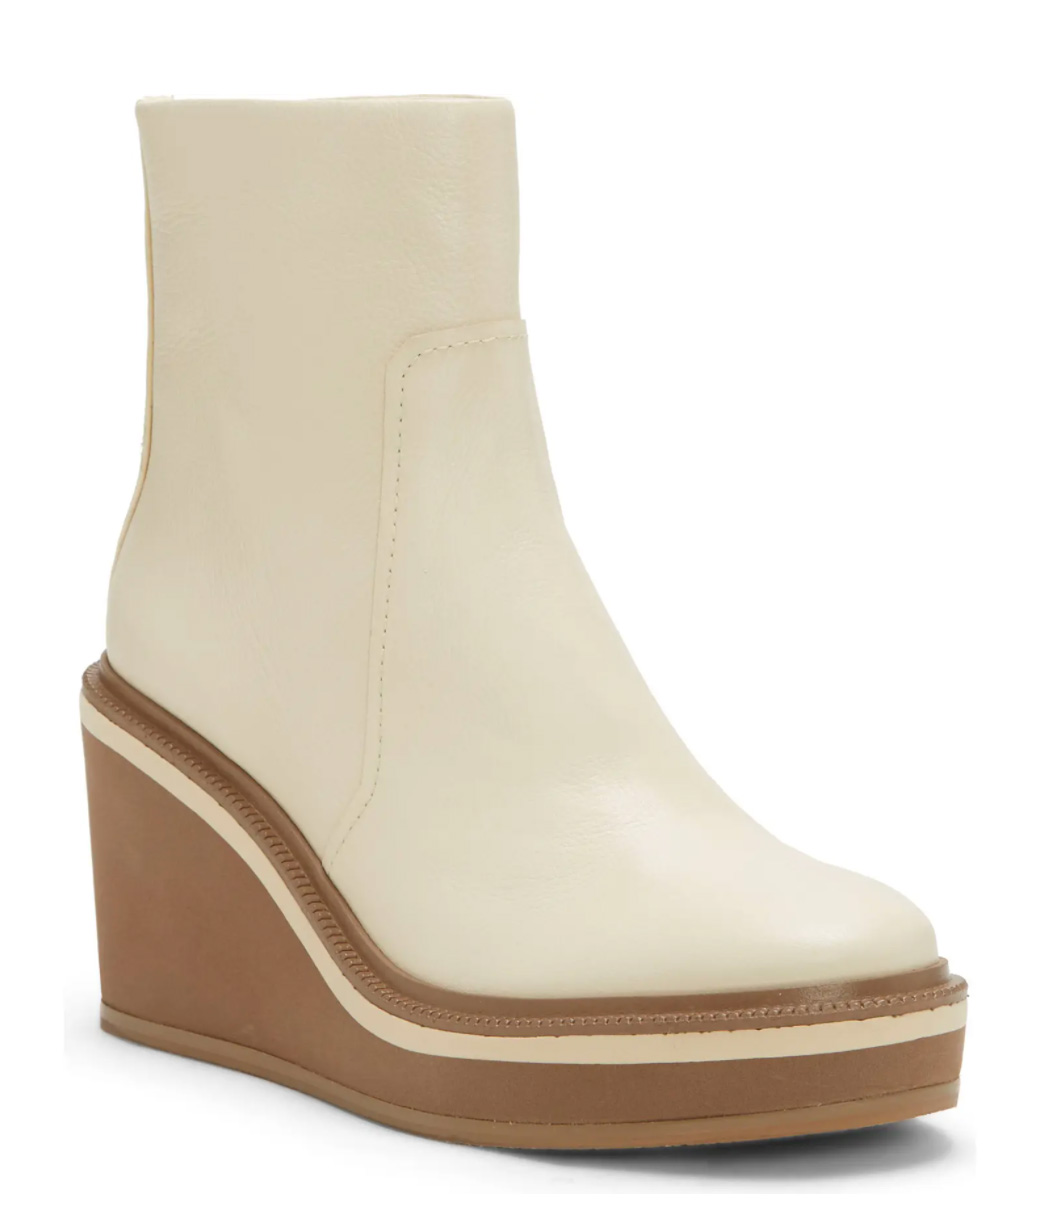 These white Chelsea-inspired platform wedge booties by Louise Et Cie are one of my absolute favorite boot styles from the sale this year. I love the modern and minimal style and the sporty striped platform detail.